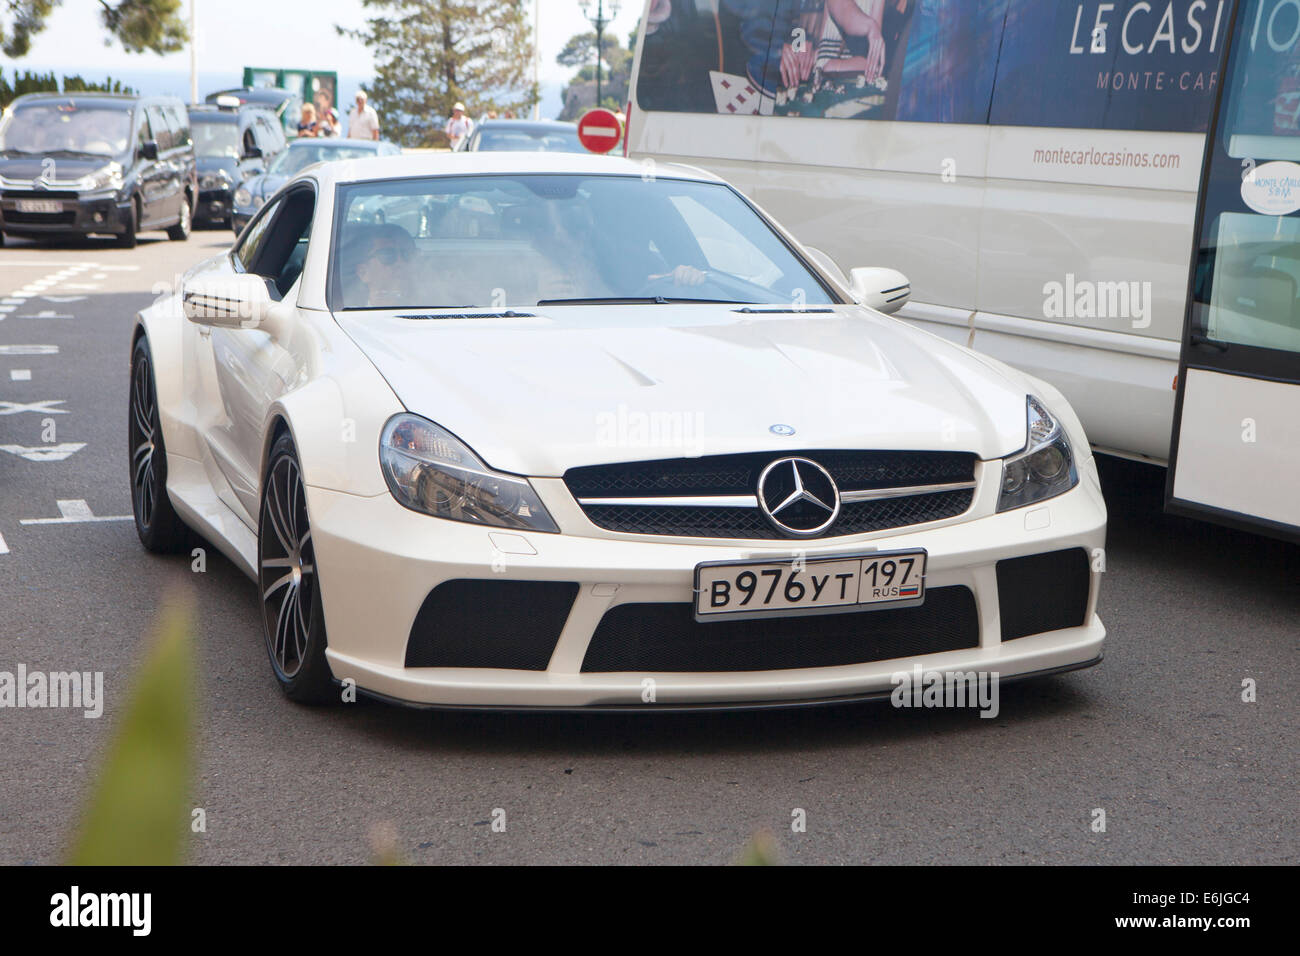 white mercedes sl65 amg black series v12 biturbo in monte carlo an stock photo royalty free. Black Bedroom Furniture Sets. Home Design Ideas